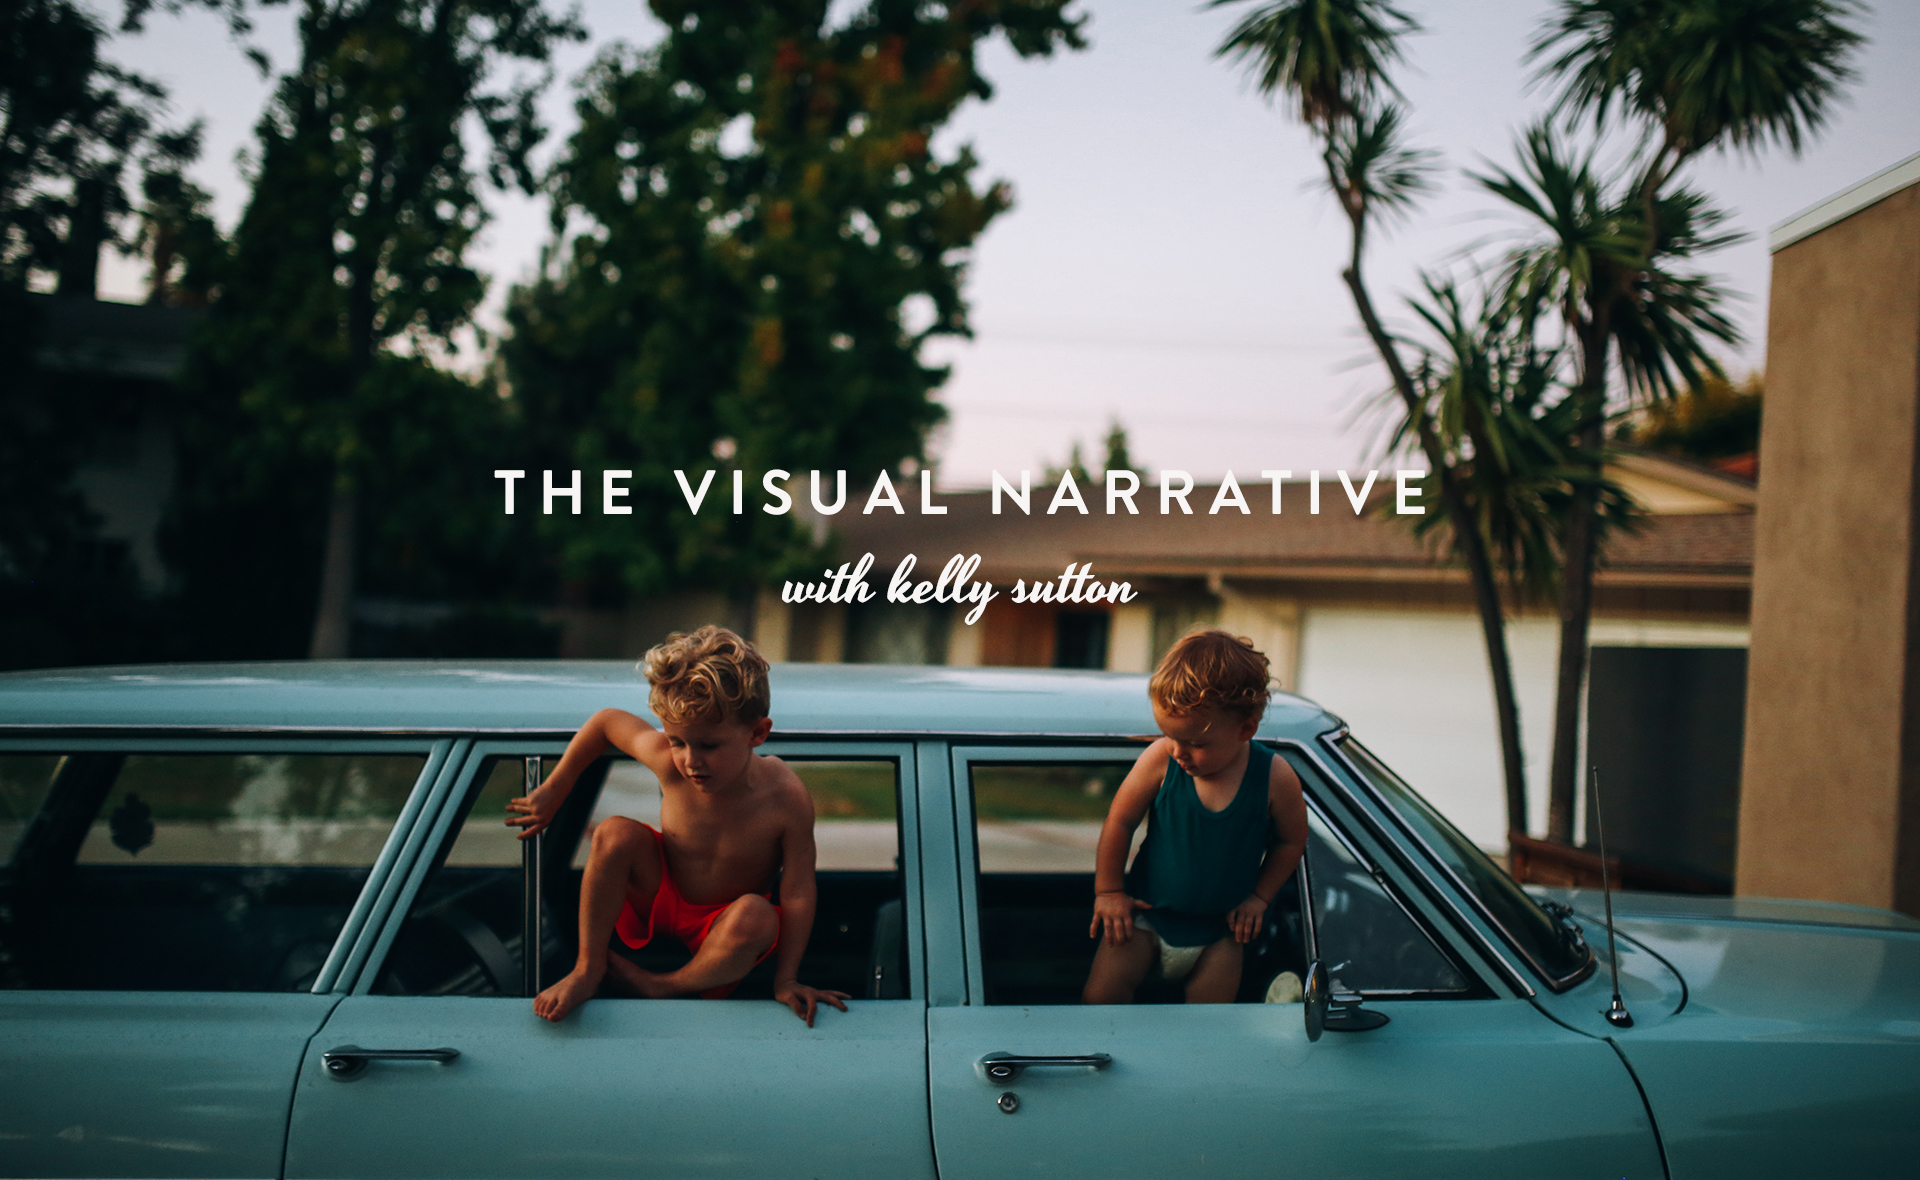 The Visual Narrative with Kelly Sutton